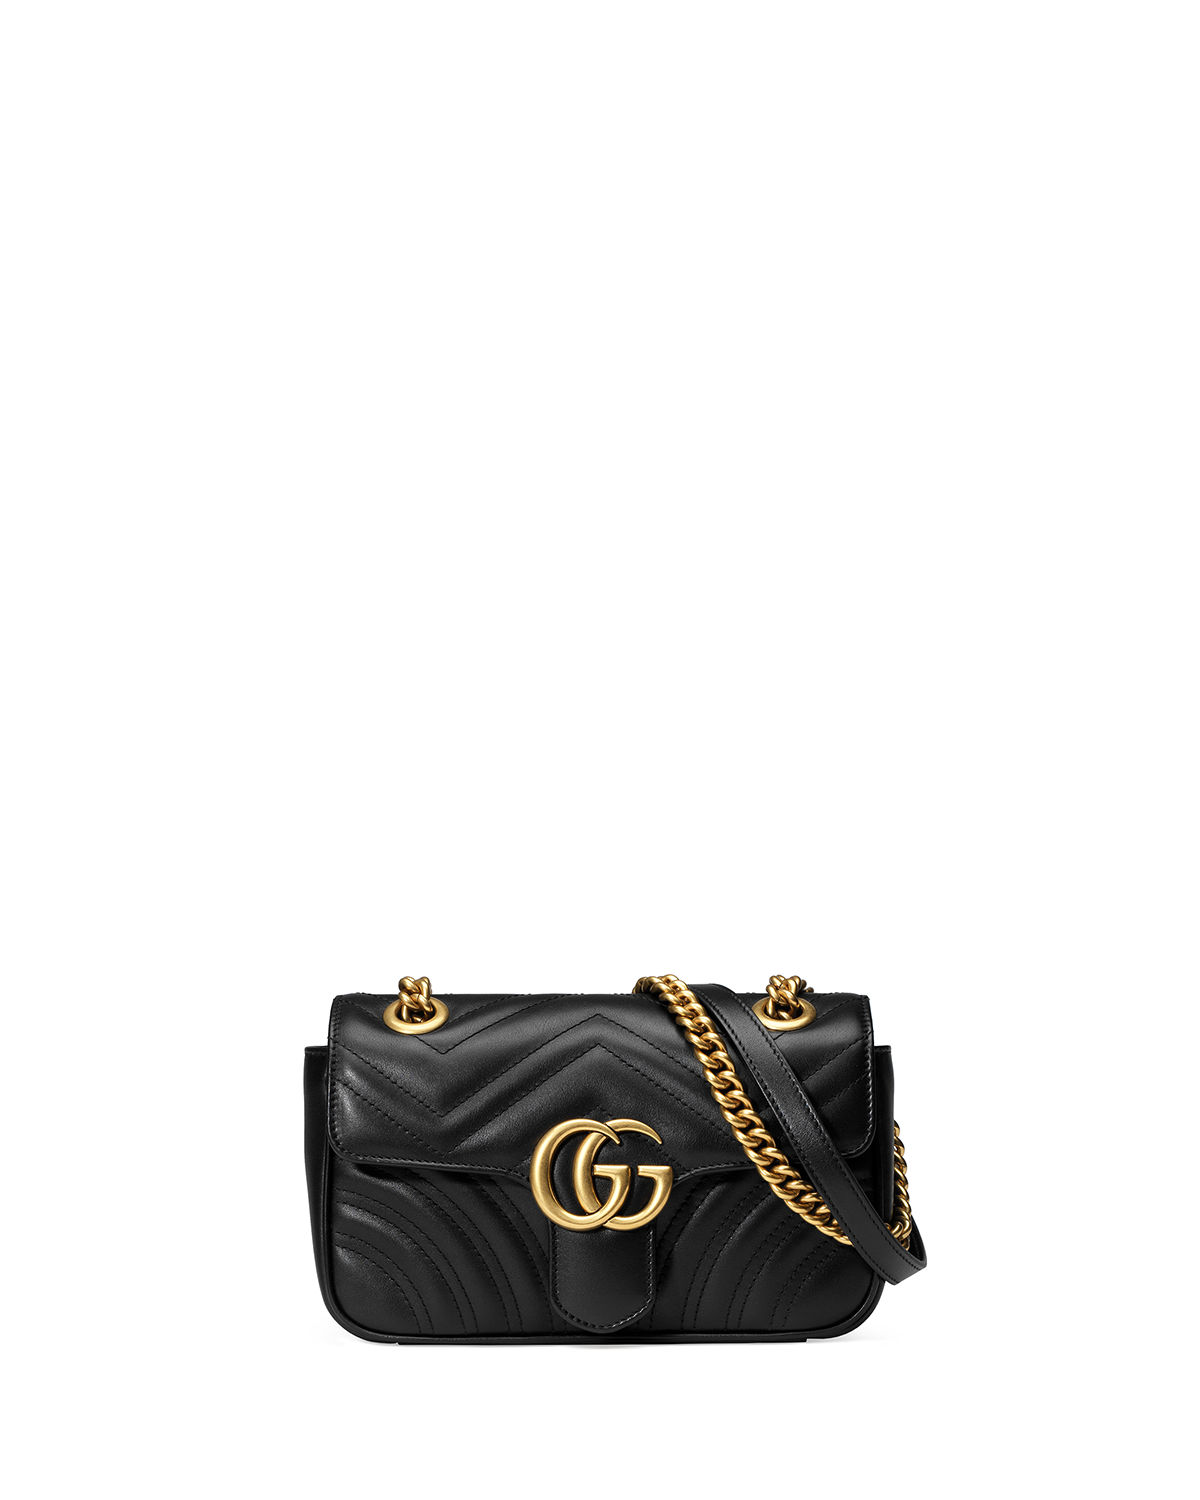 6ca078f980c Gucci GG Marmont 2.0 Mini Matelasse Shoulder Bag